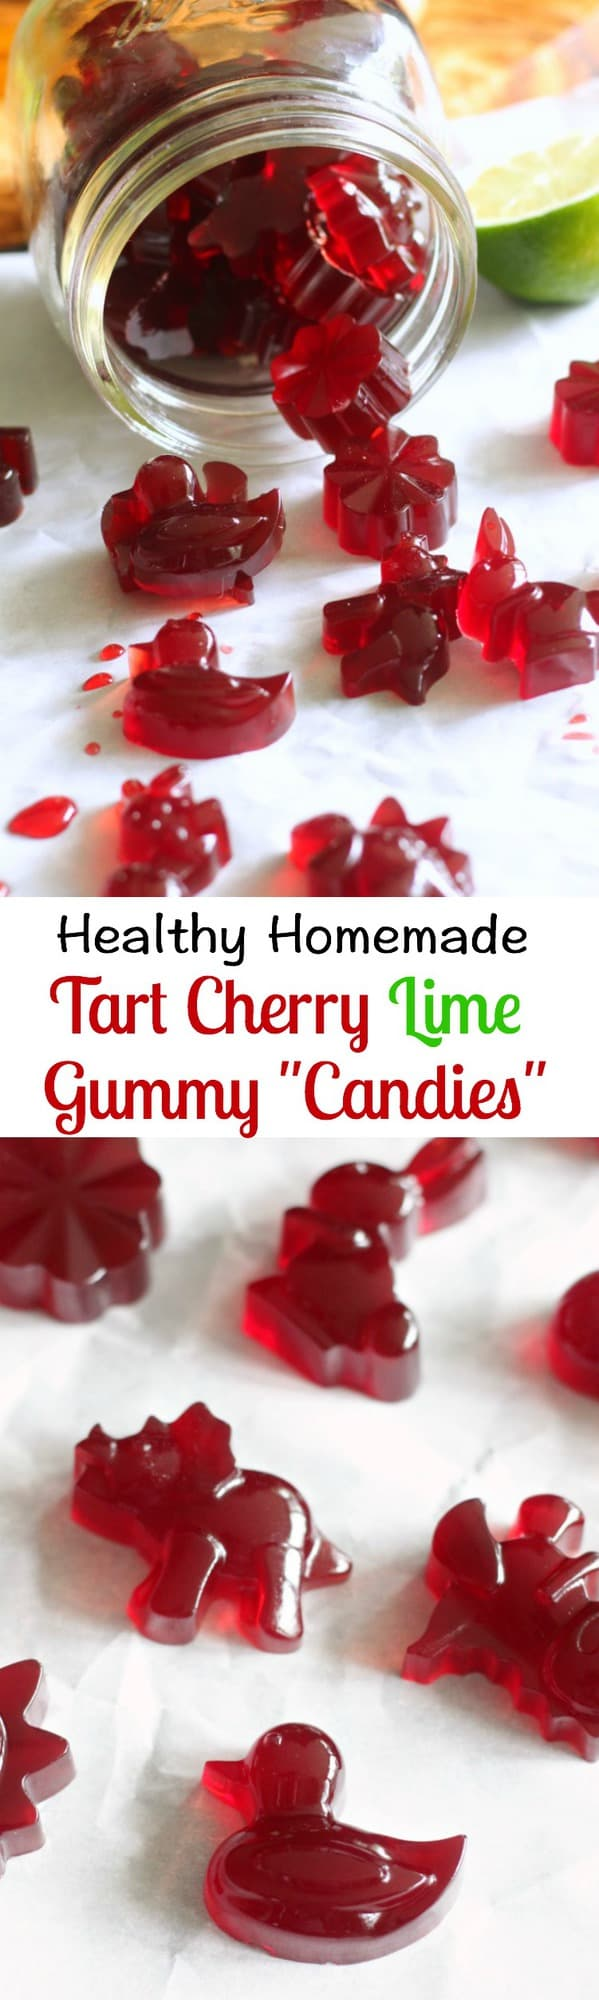 "This Tart Cherry Lime Homemade Gummy ""Candy"" is made with grass fed, pasture raised gelatin for a boost of immunity and gut healing powers!  This healthy homemade gummy candy is ultra kid friendly and great for grown-ups too.   Made with 100% tart cherry juice, raw honey and grass fed gelatin."